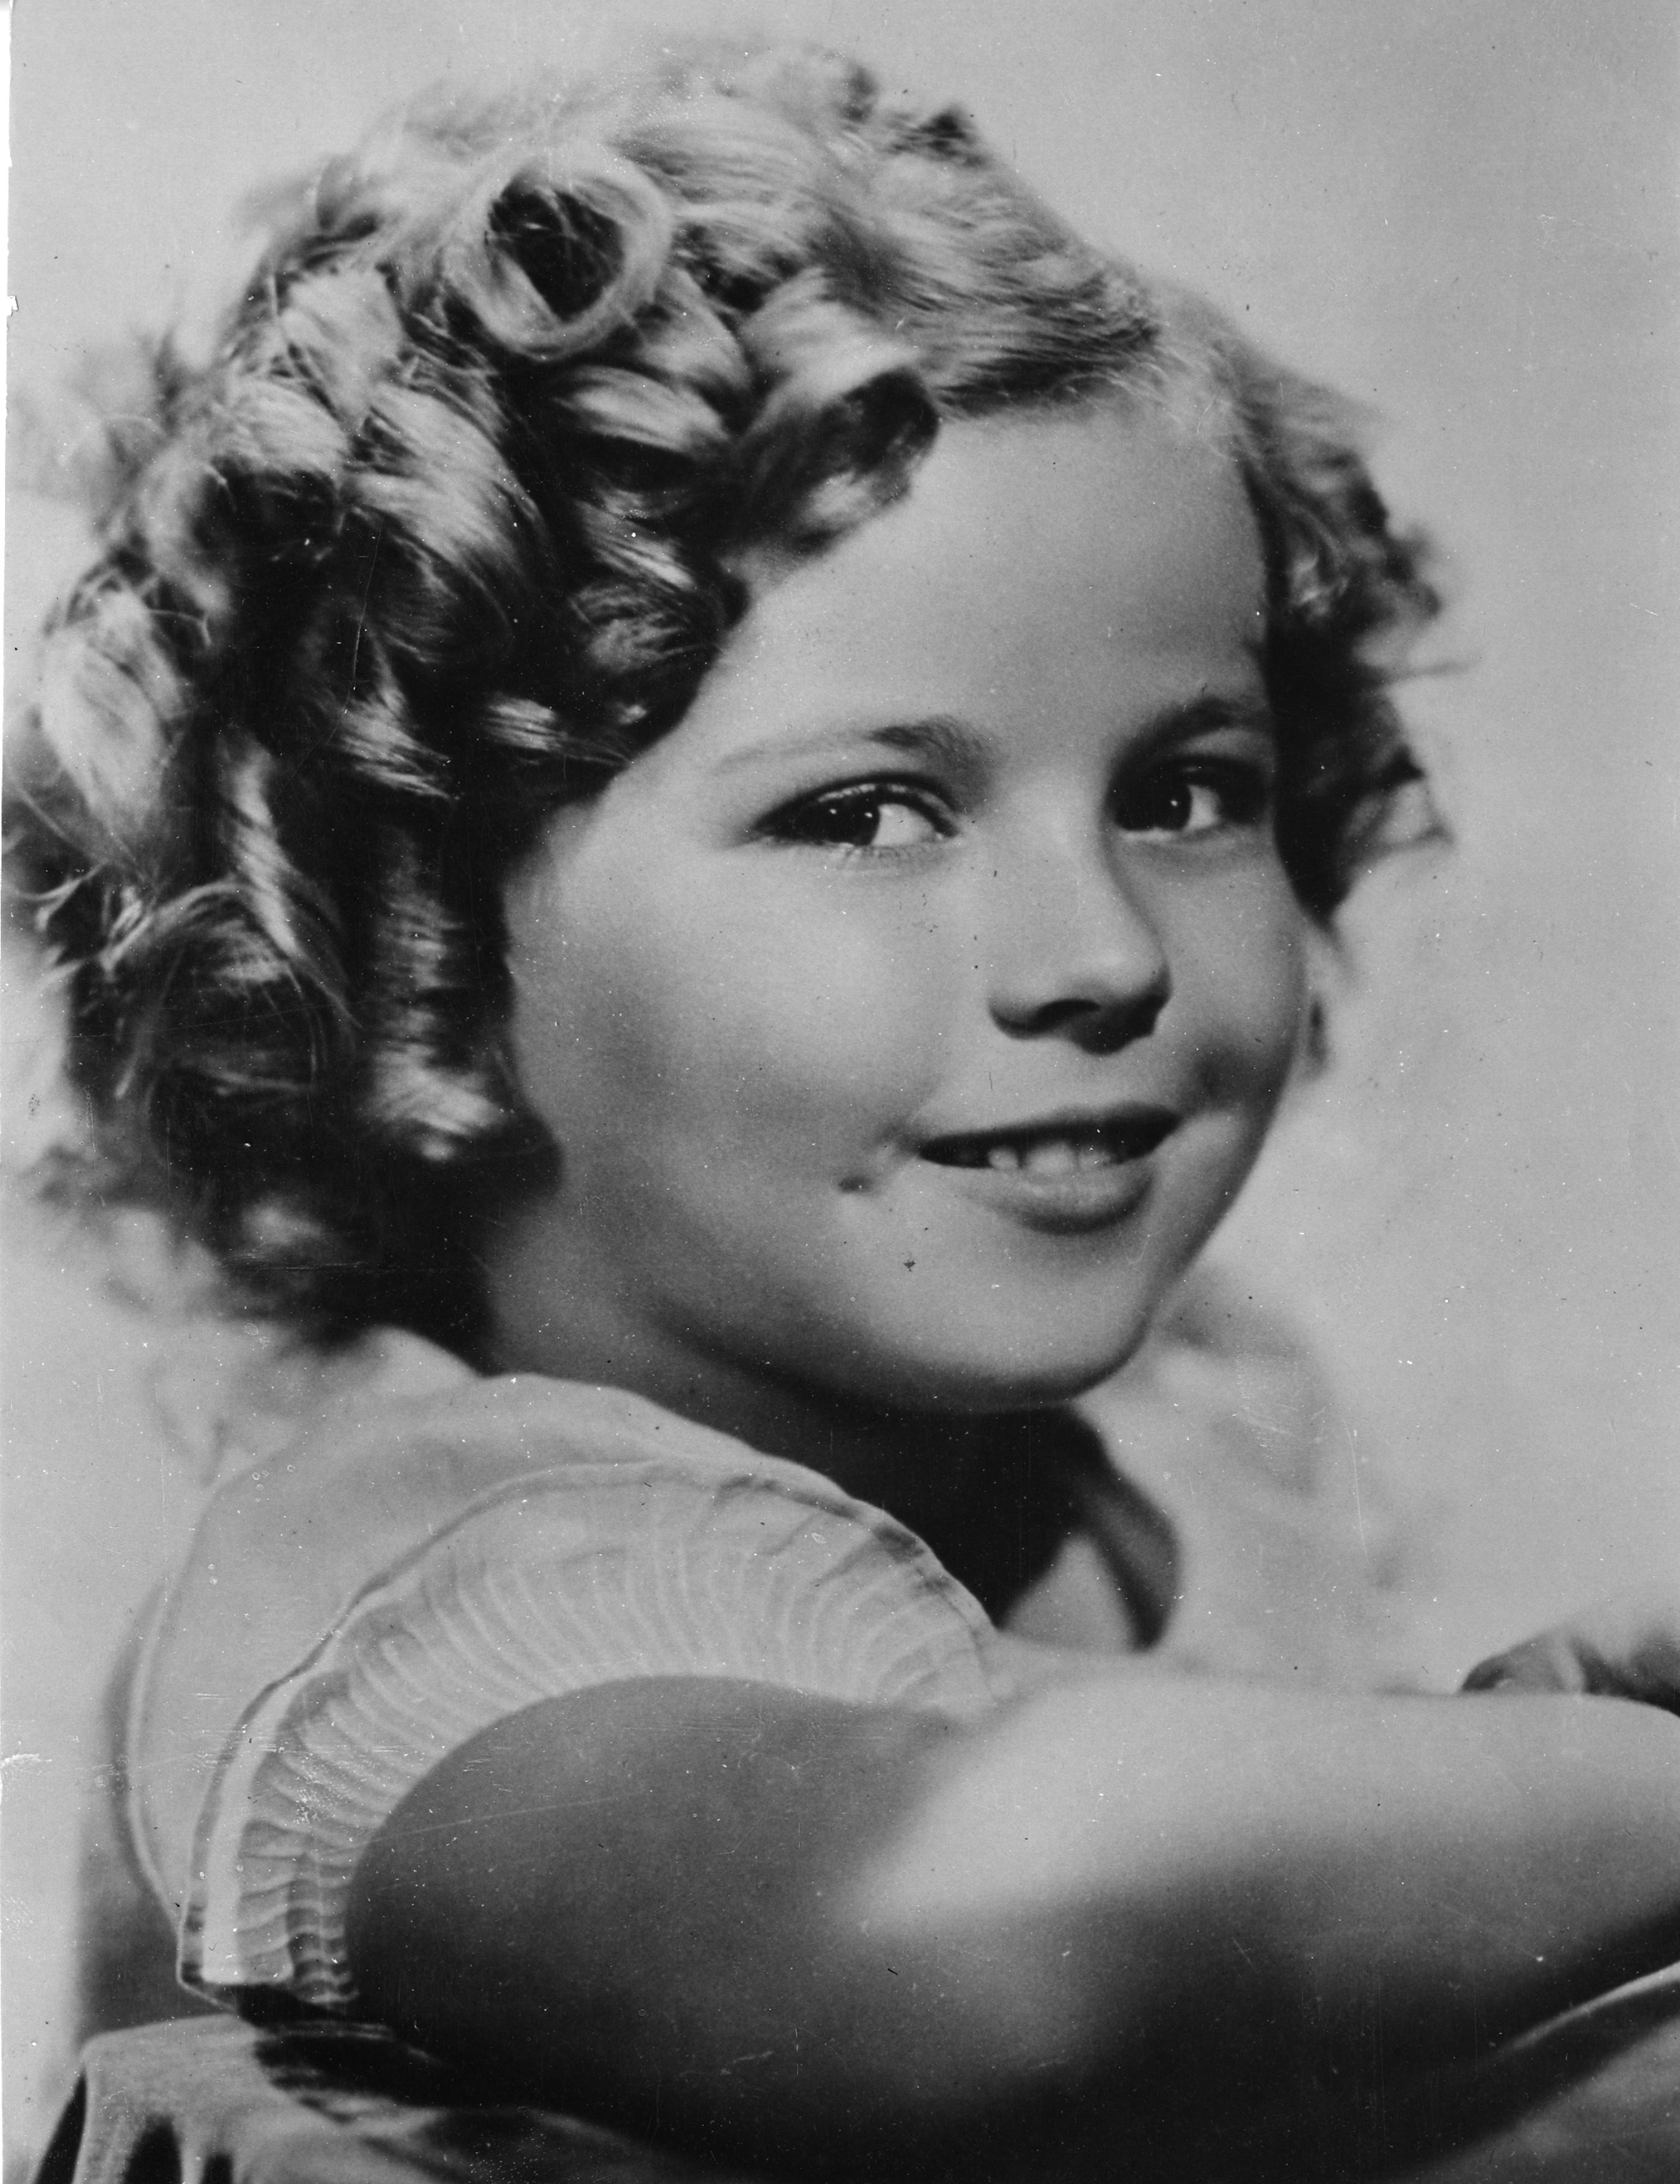 1930s film sensation Shirley Temple died Monday at age 85.